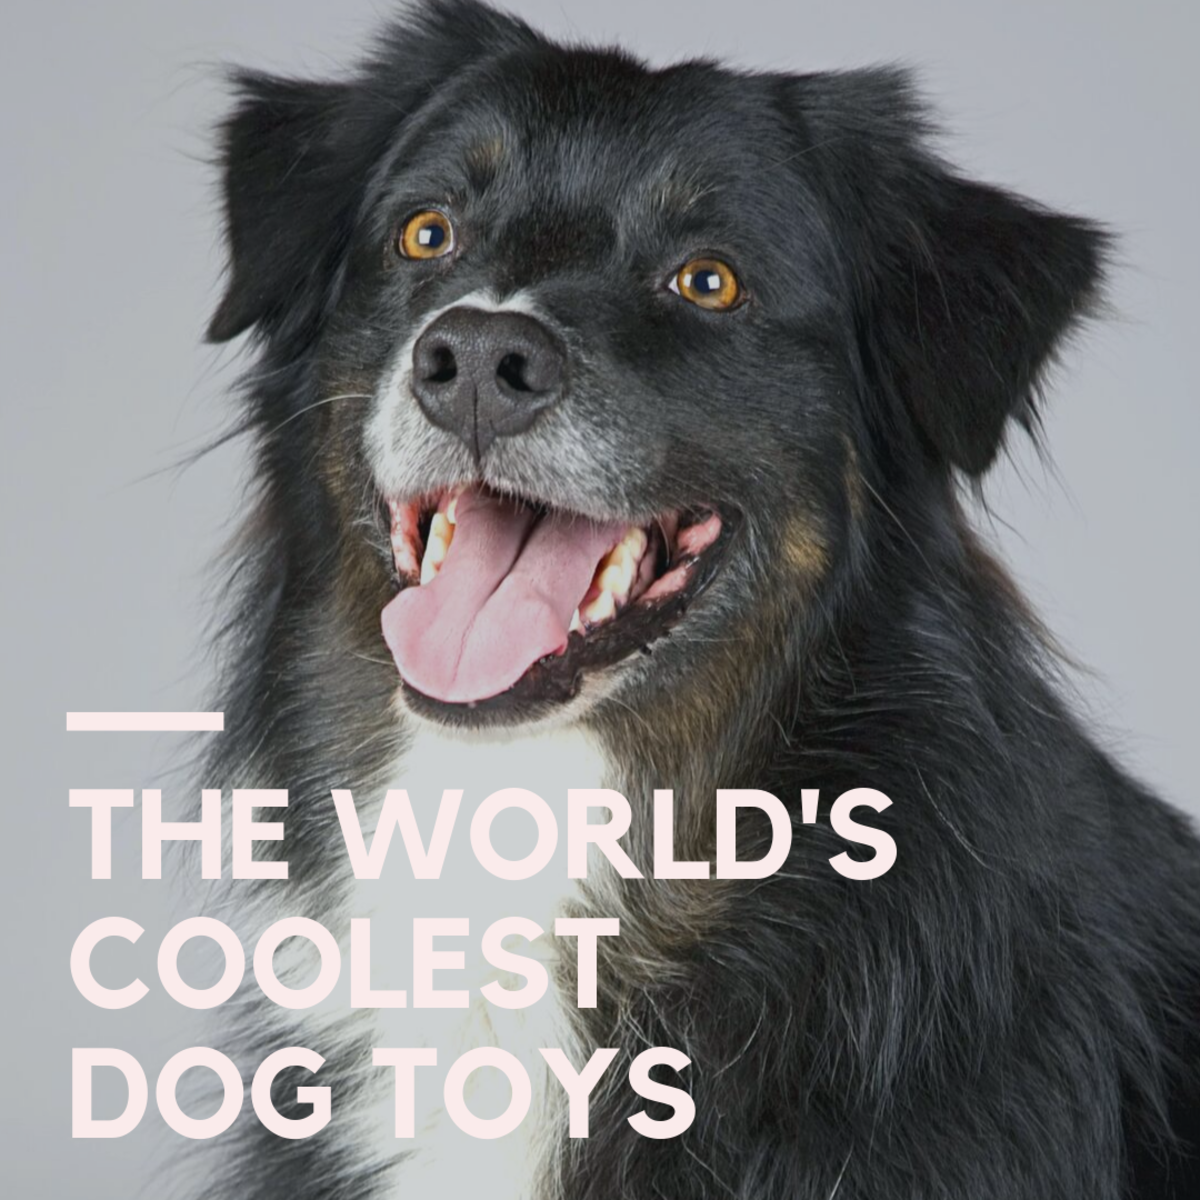 The Coolest Dog Toys on the Planet!